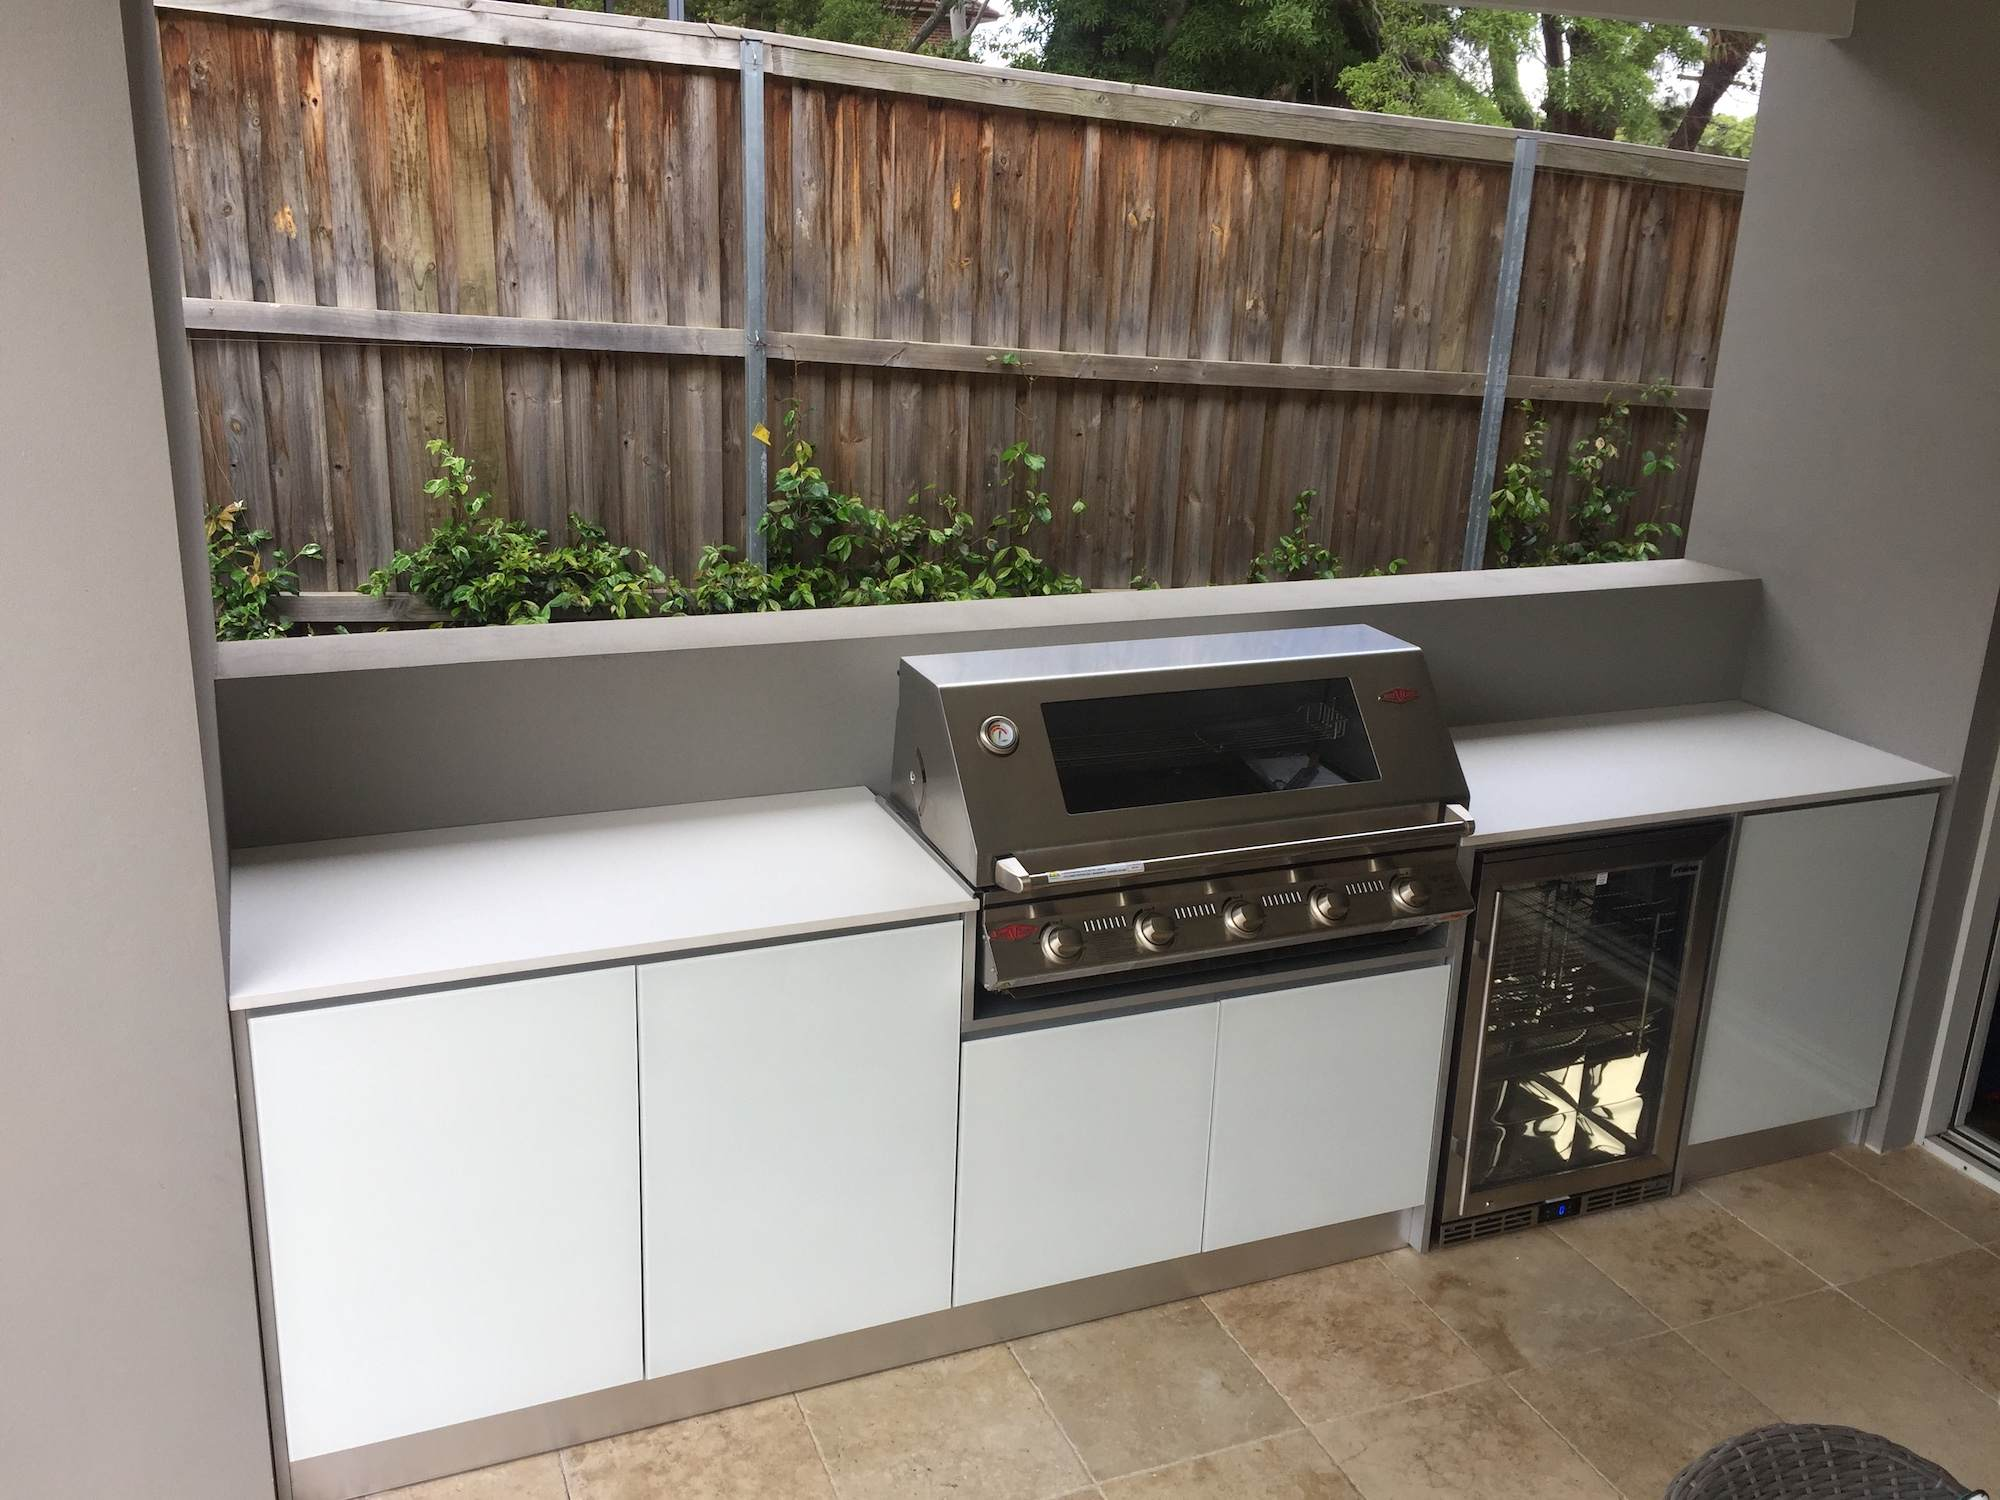 Full aluminium cabinets, with 5mm white tempered glass doors and 20mm Dekton bench tops in Nayla, complete with a Beefeater BBQ and Rhino Fridge.